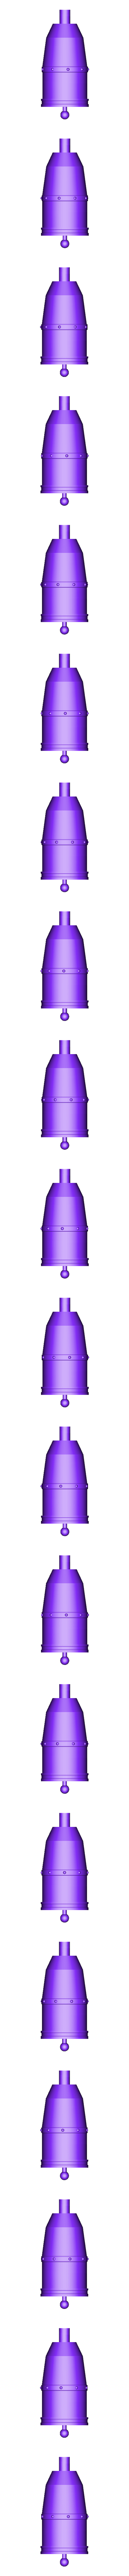 Barrel_end_without_led_slot.stl Download free STL file Raygun • 3D print template, cmoore1